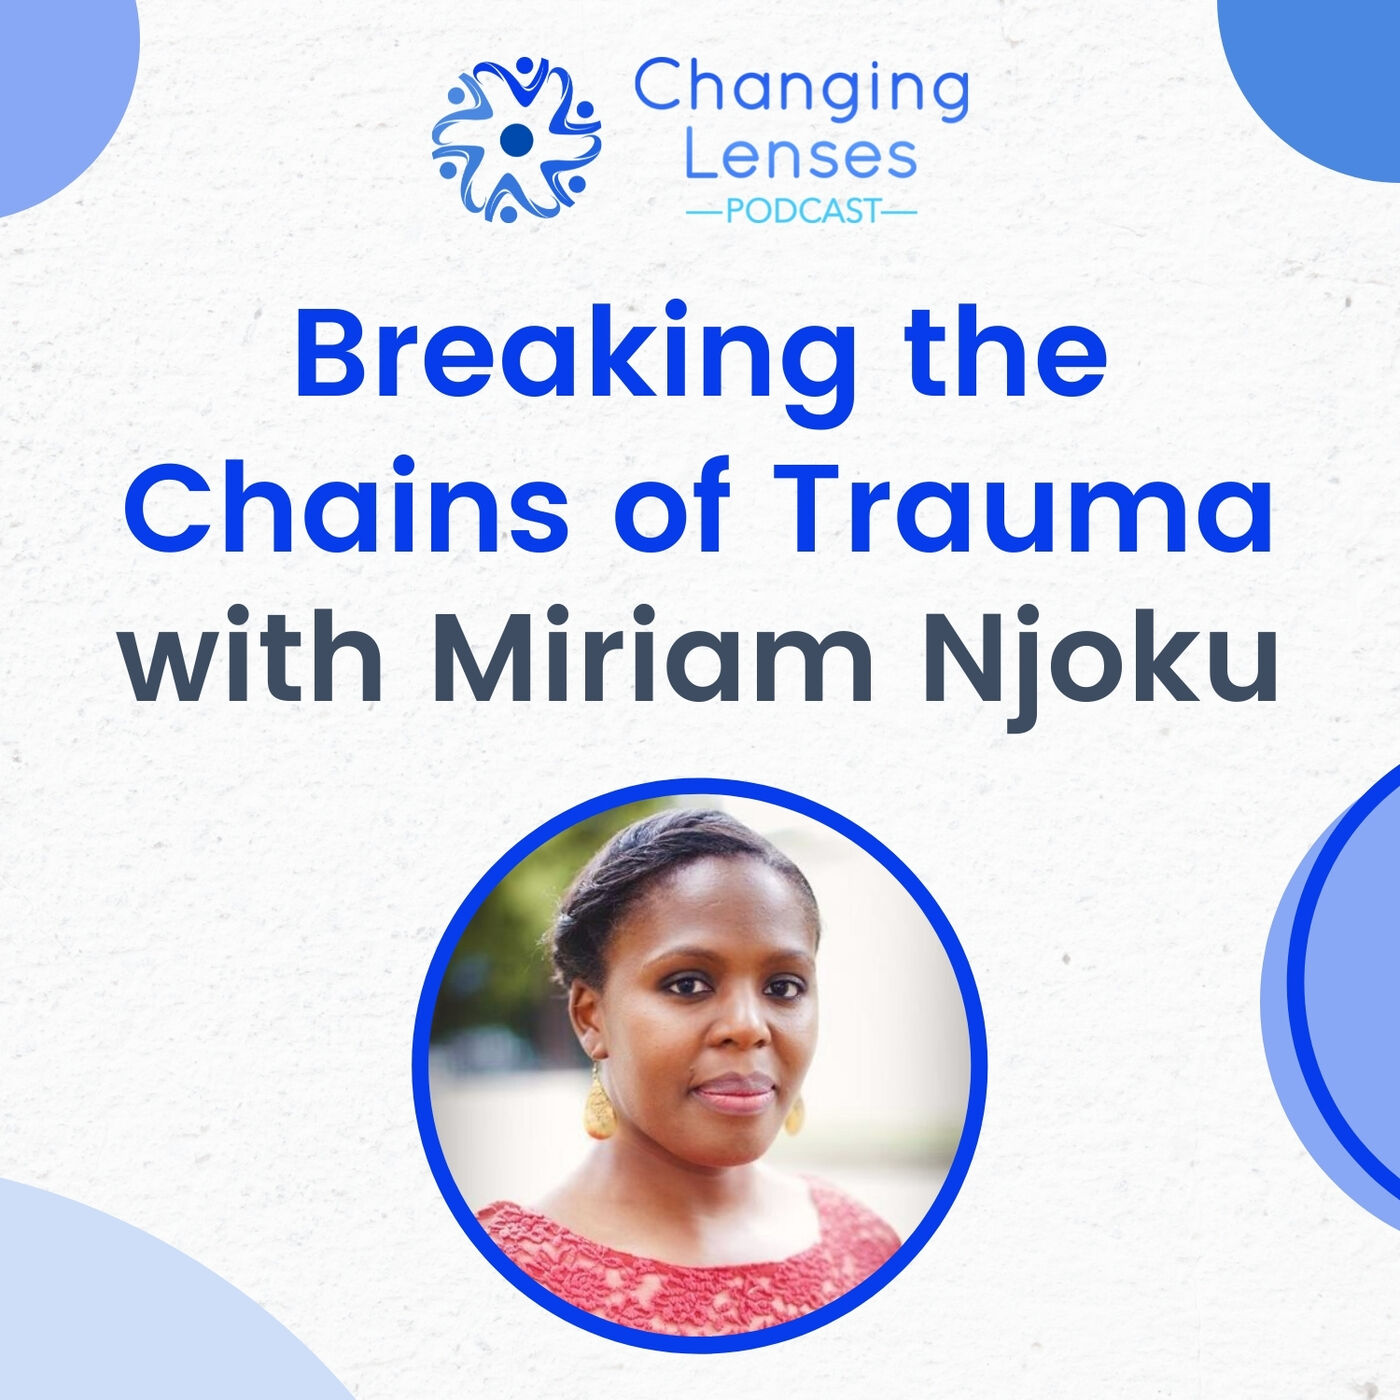 Ep13: Breaking the Chains of Trauma, with Miriam Njoku